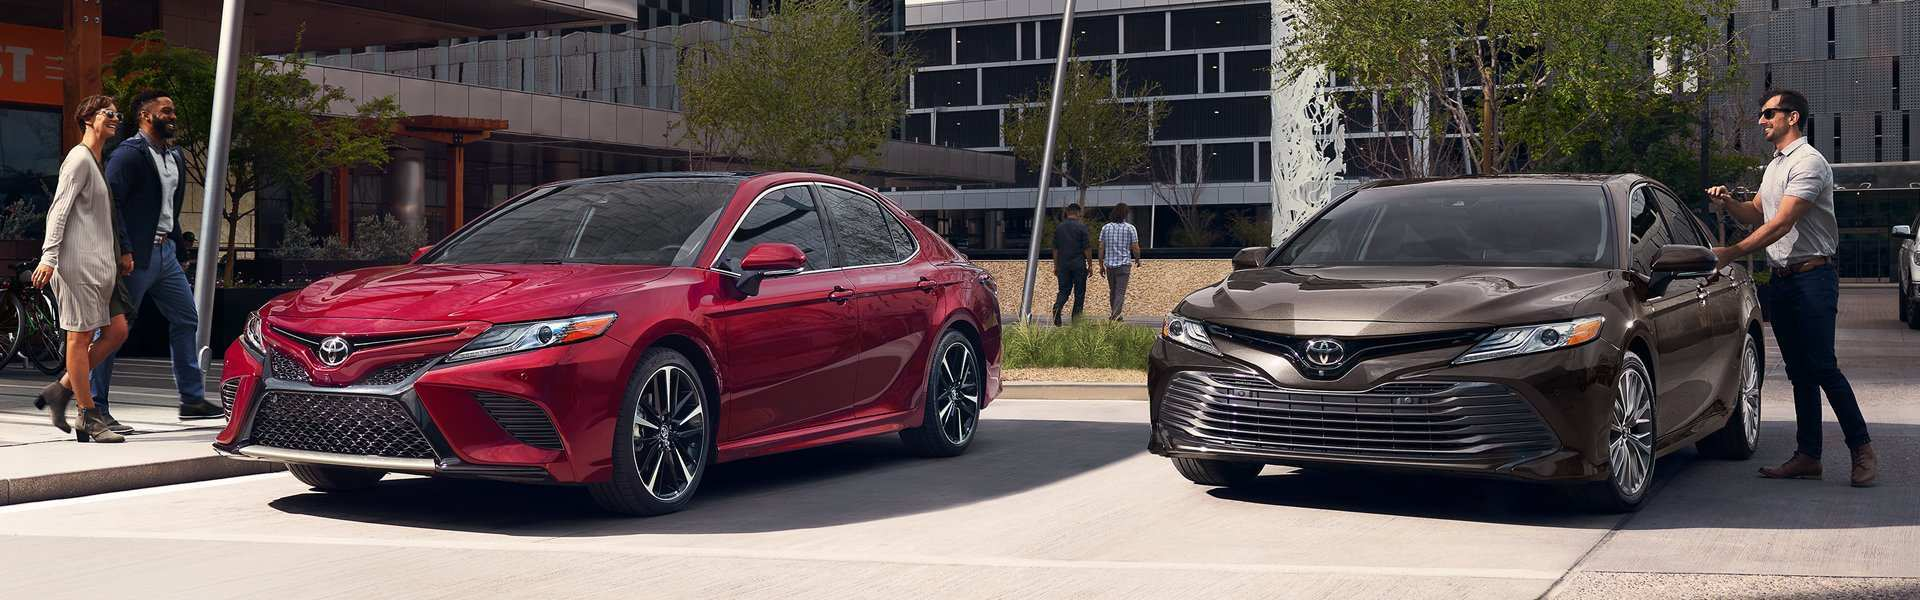 87 All New 2019 Toyota Vehicles Exterior and Interior with 2019 Toyota Vehicles